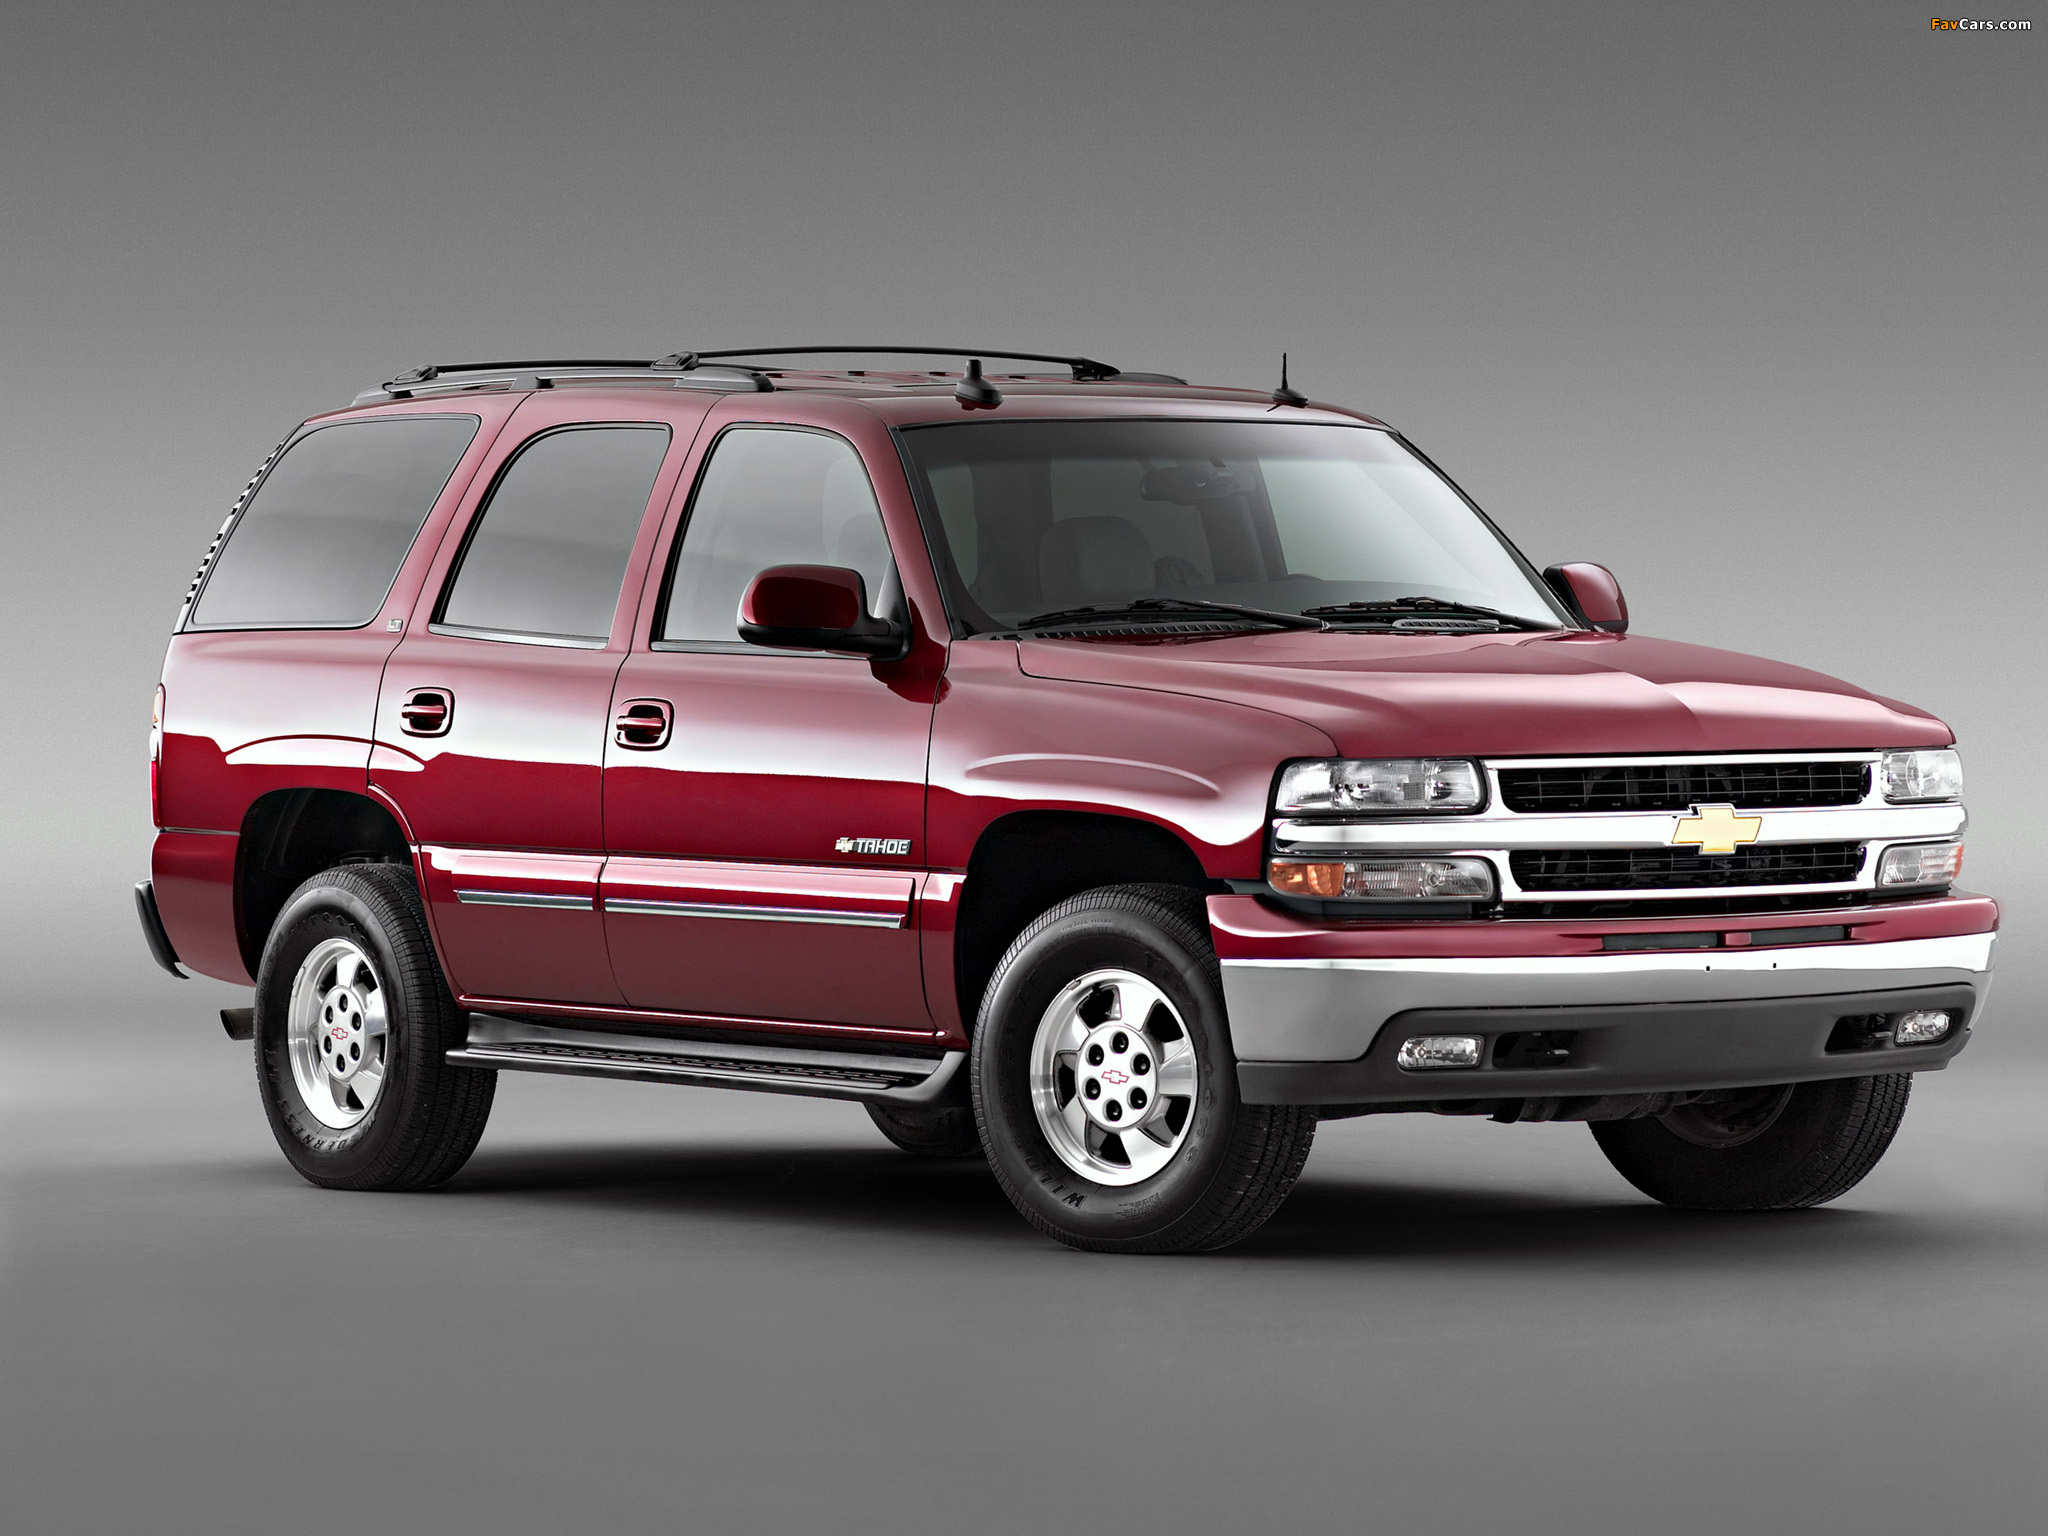 Cars chevrolet tahoe (gmt840) 2000 #13